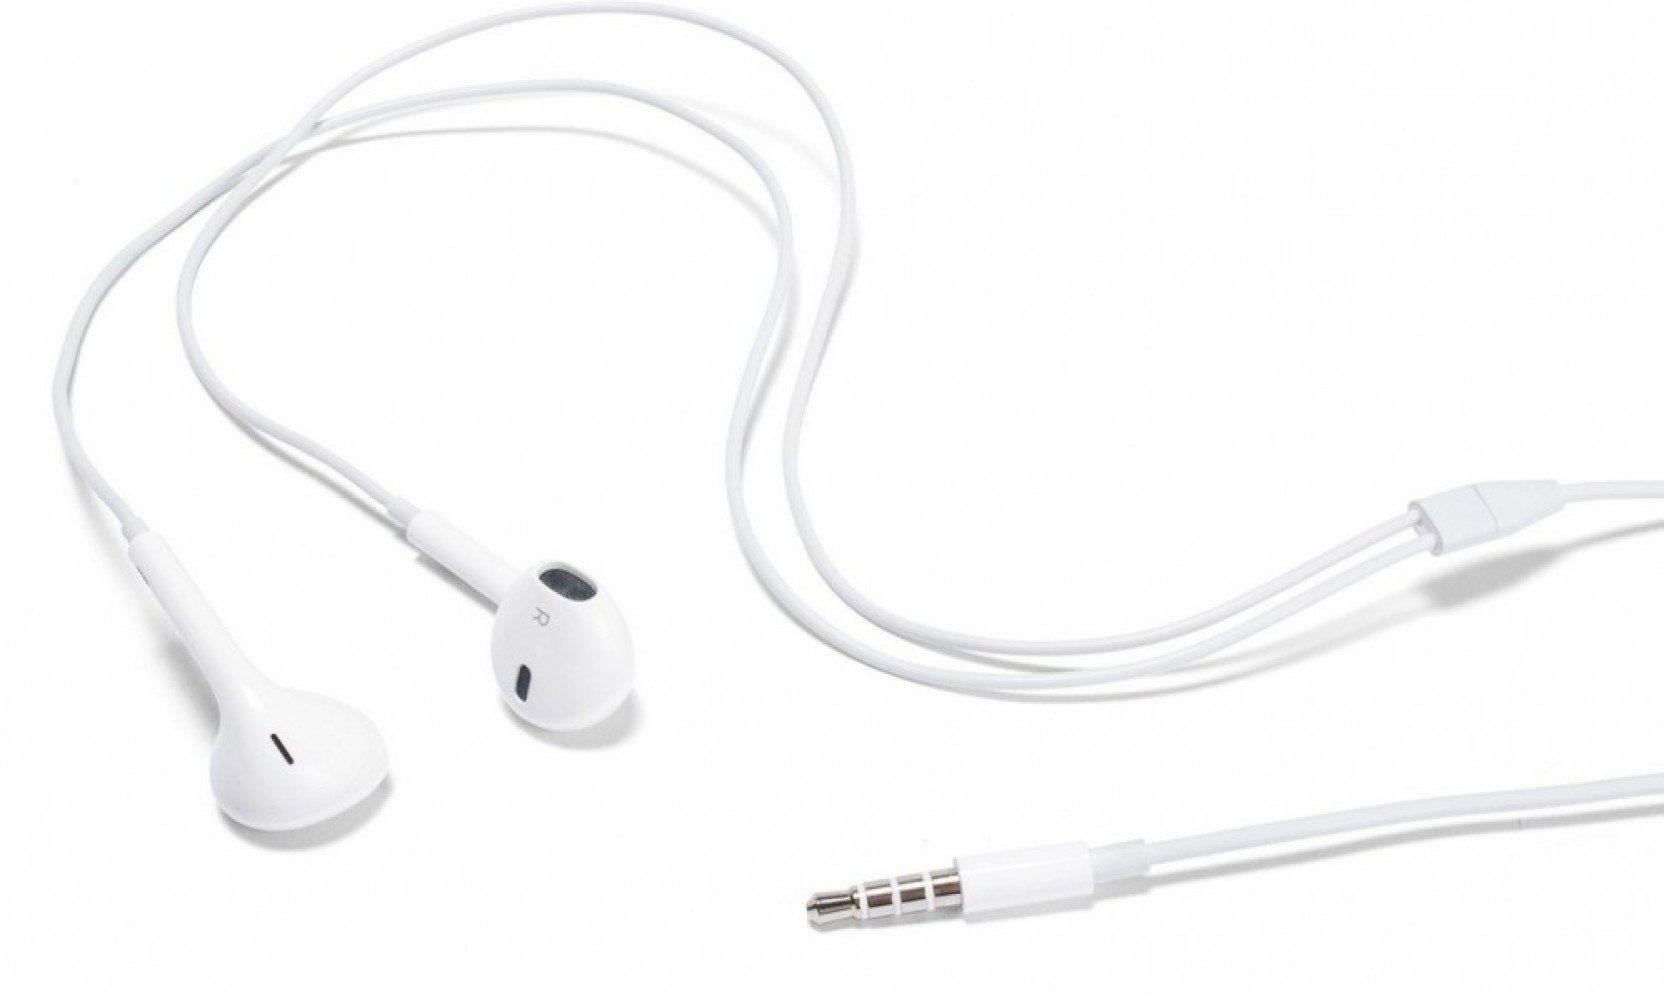 Stereo earbuds corded - headphones blueant apple stereo